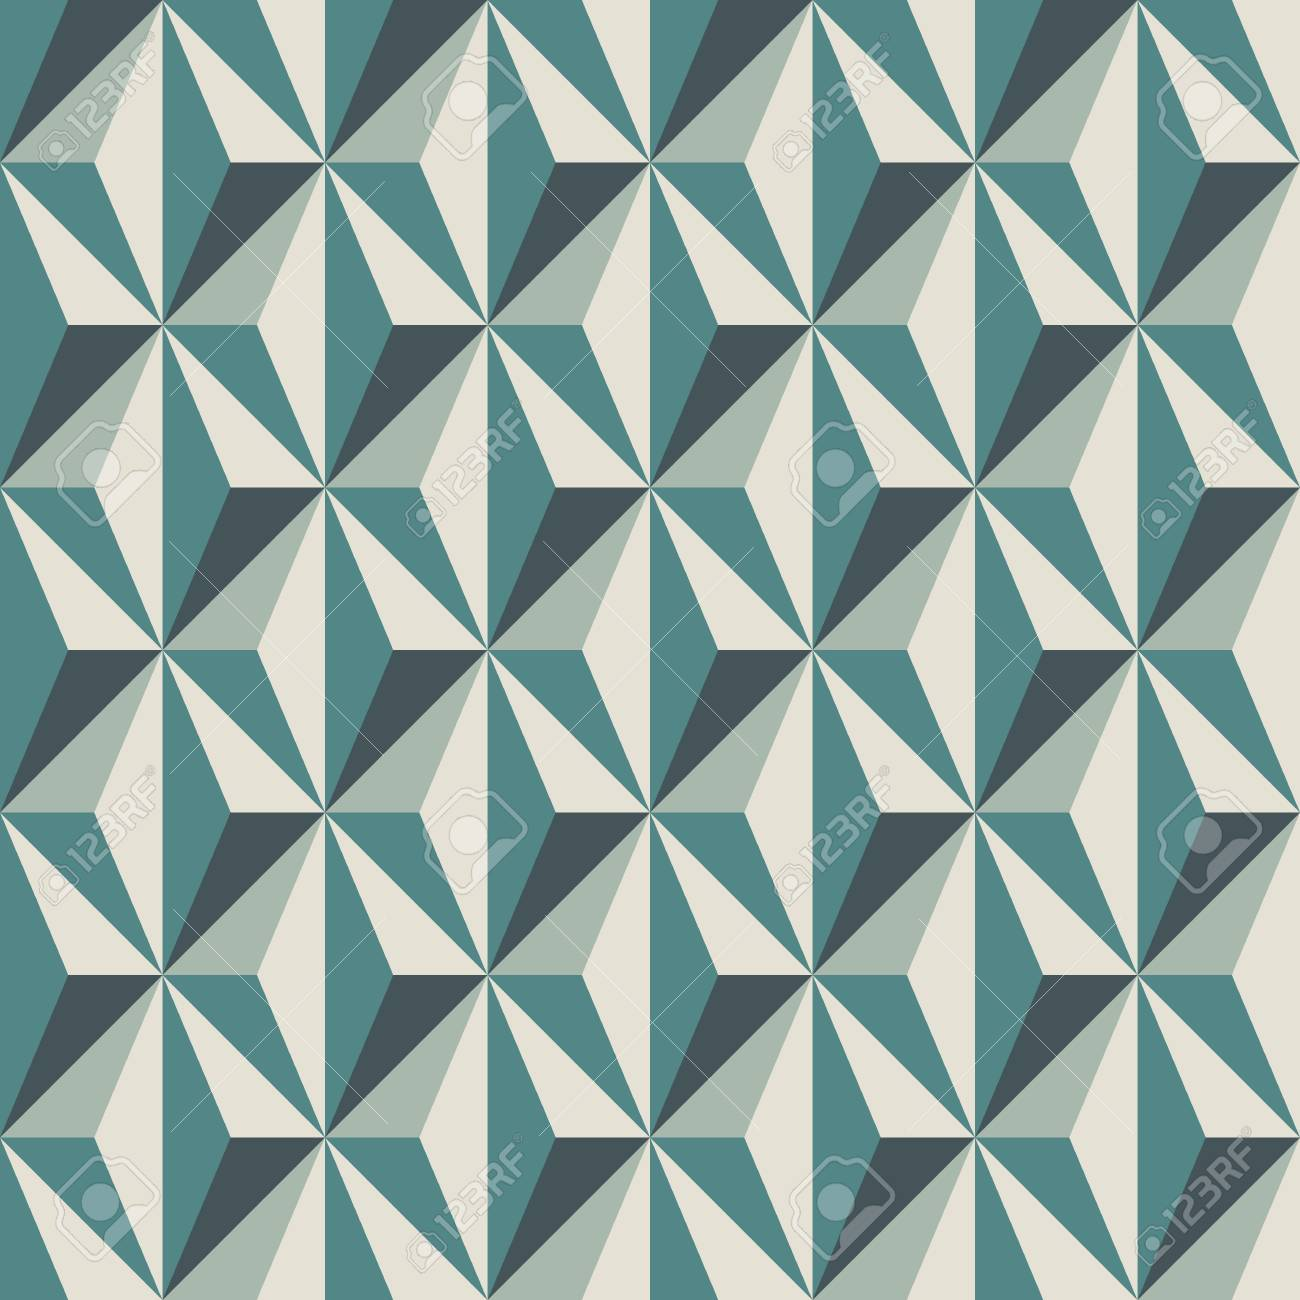 Geometric Abstract Background With 3d Effect Seamless Pattern